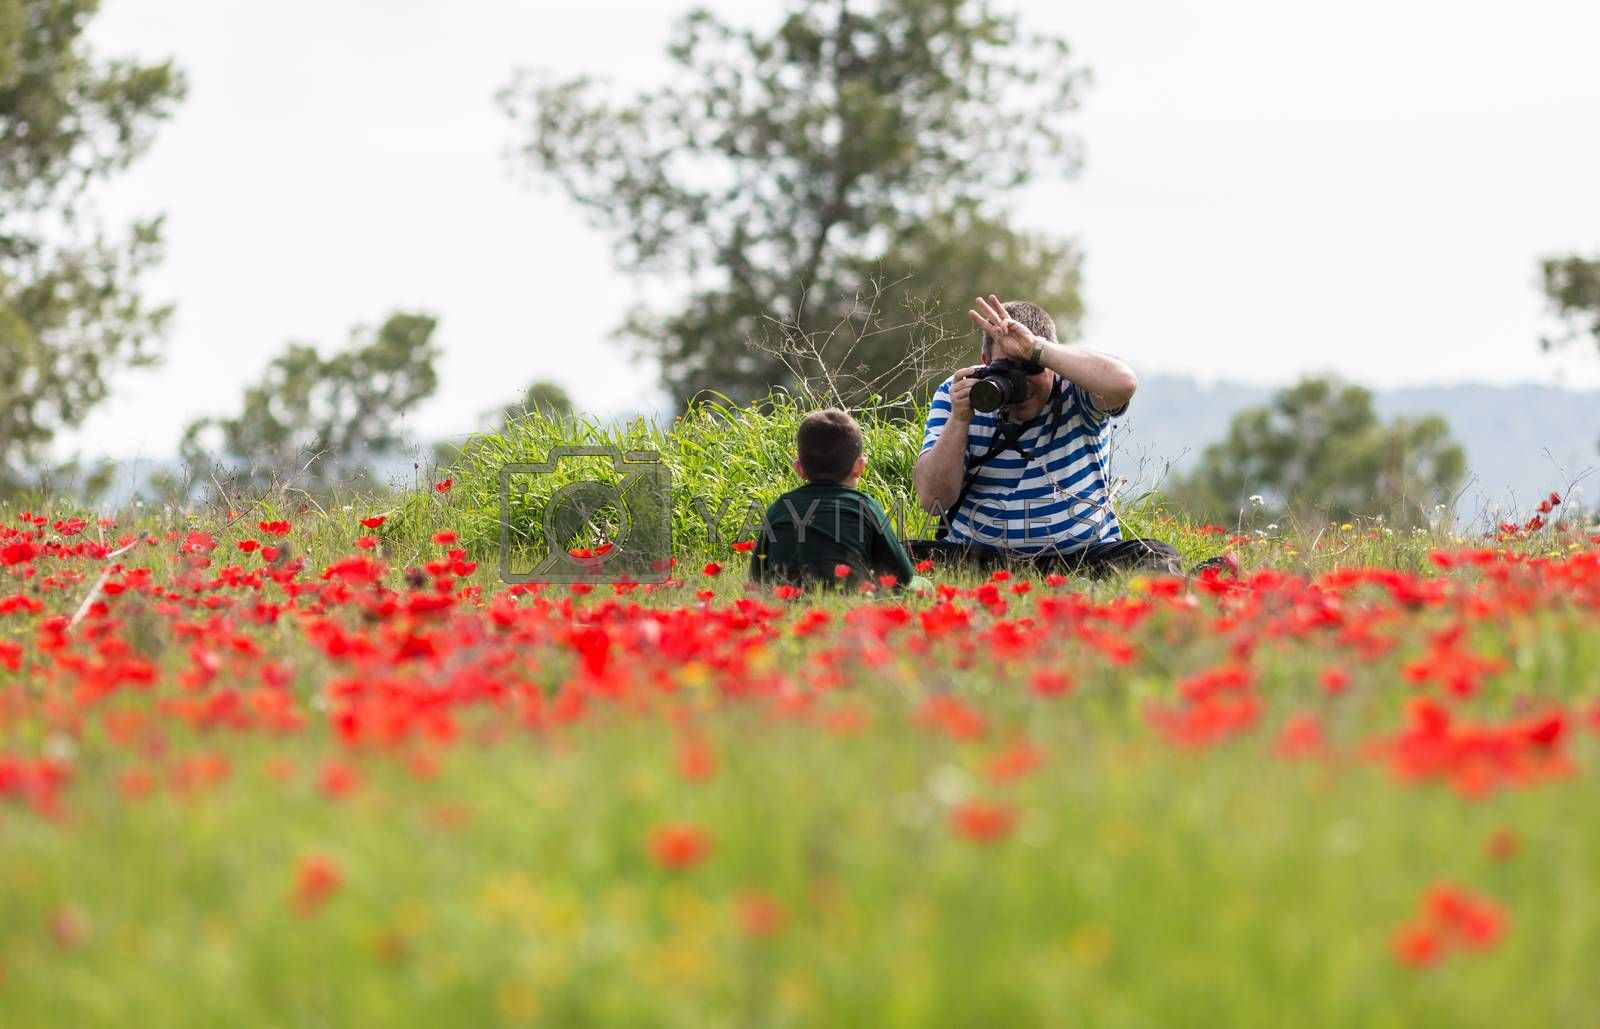 man photographing child in a field of poppies